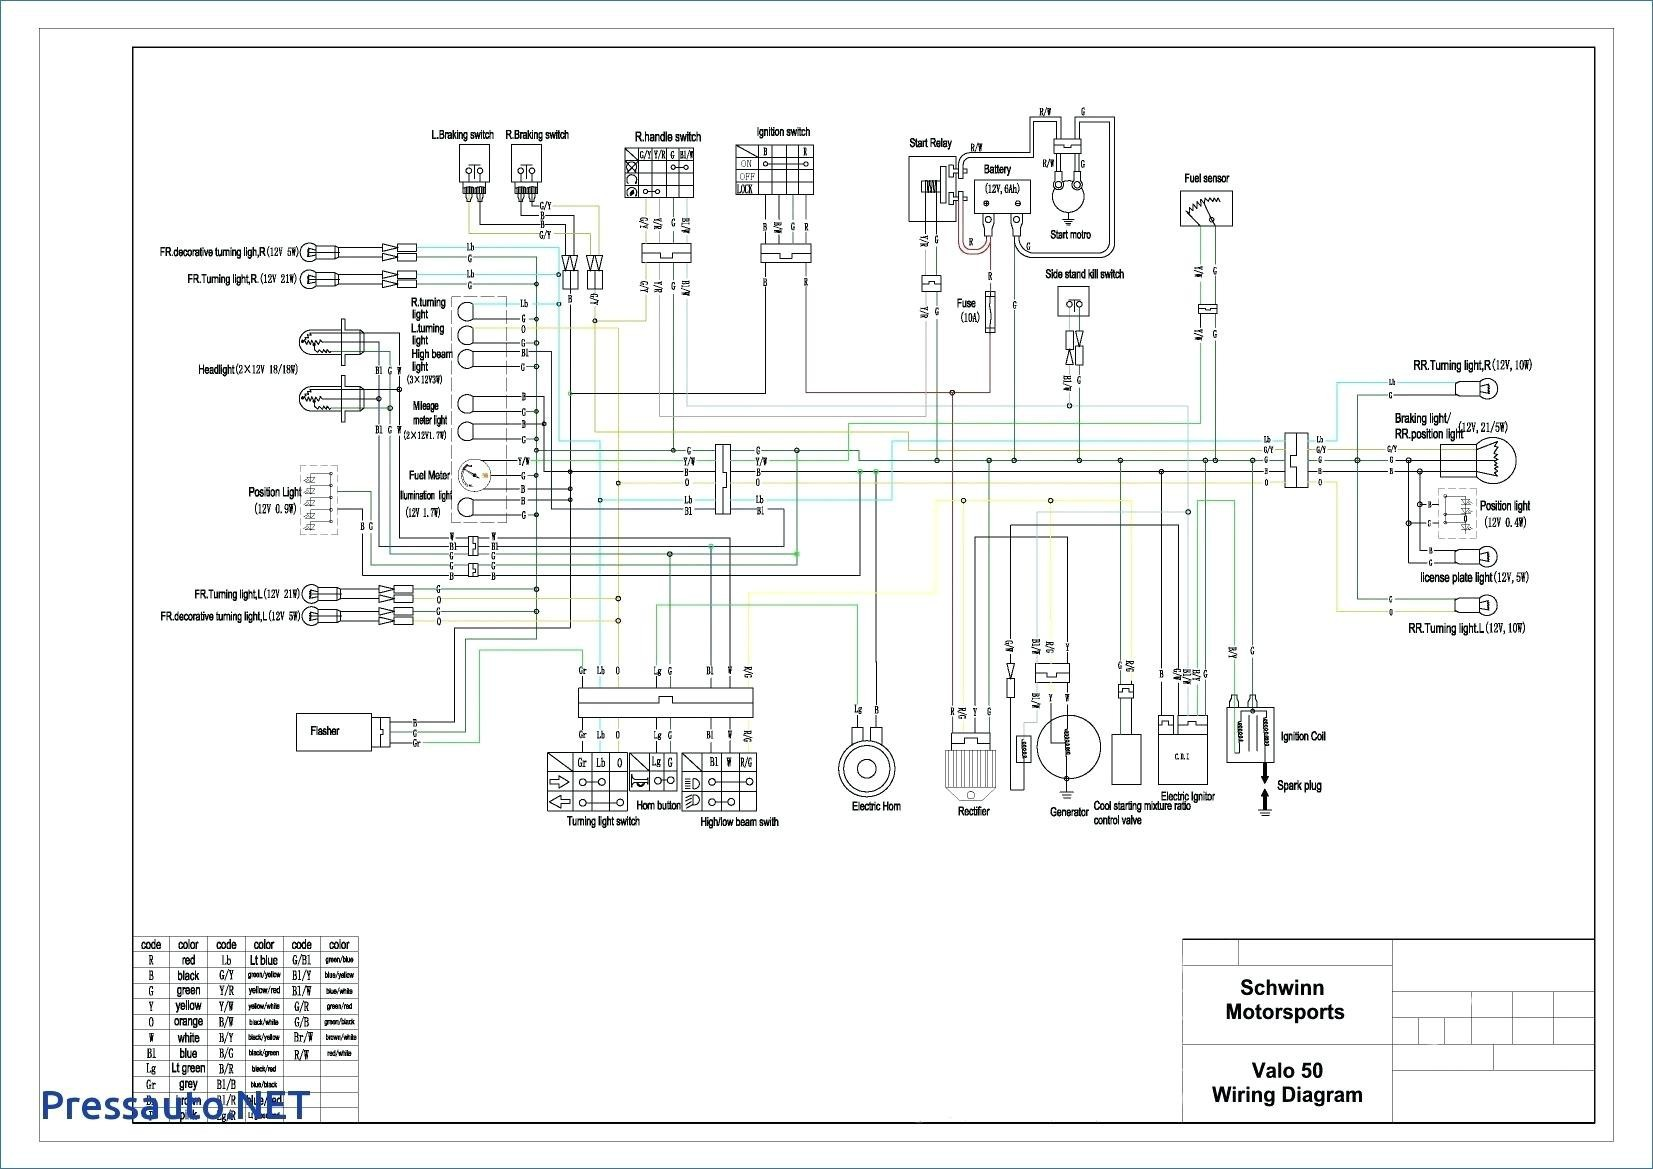 Wiring Diagram Likewise Gentex Mirror Wiring Diagram On Gentex Mirror